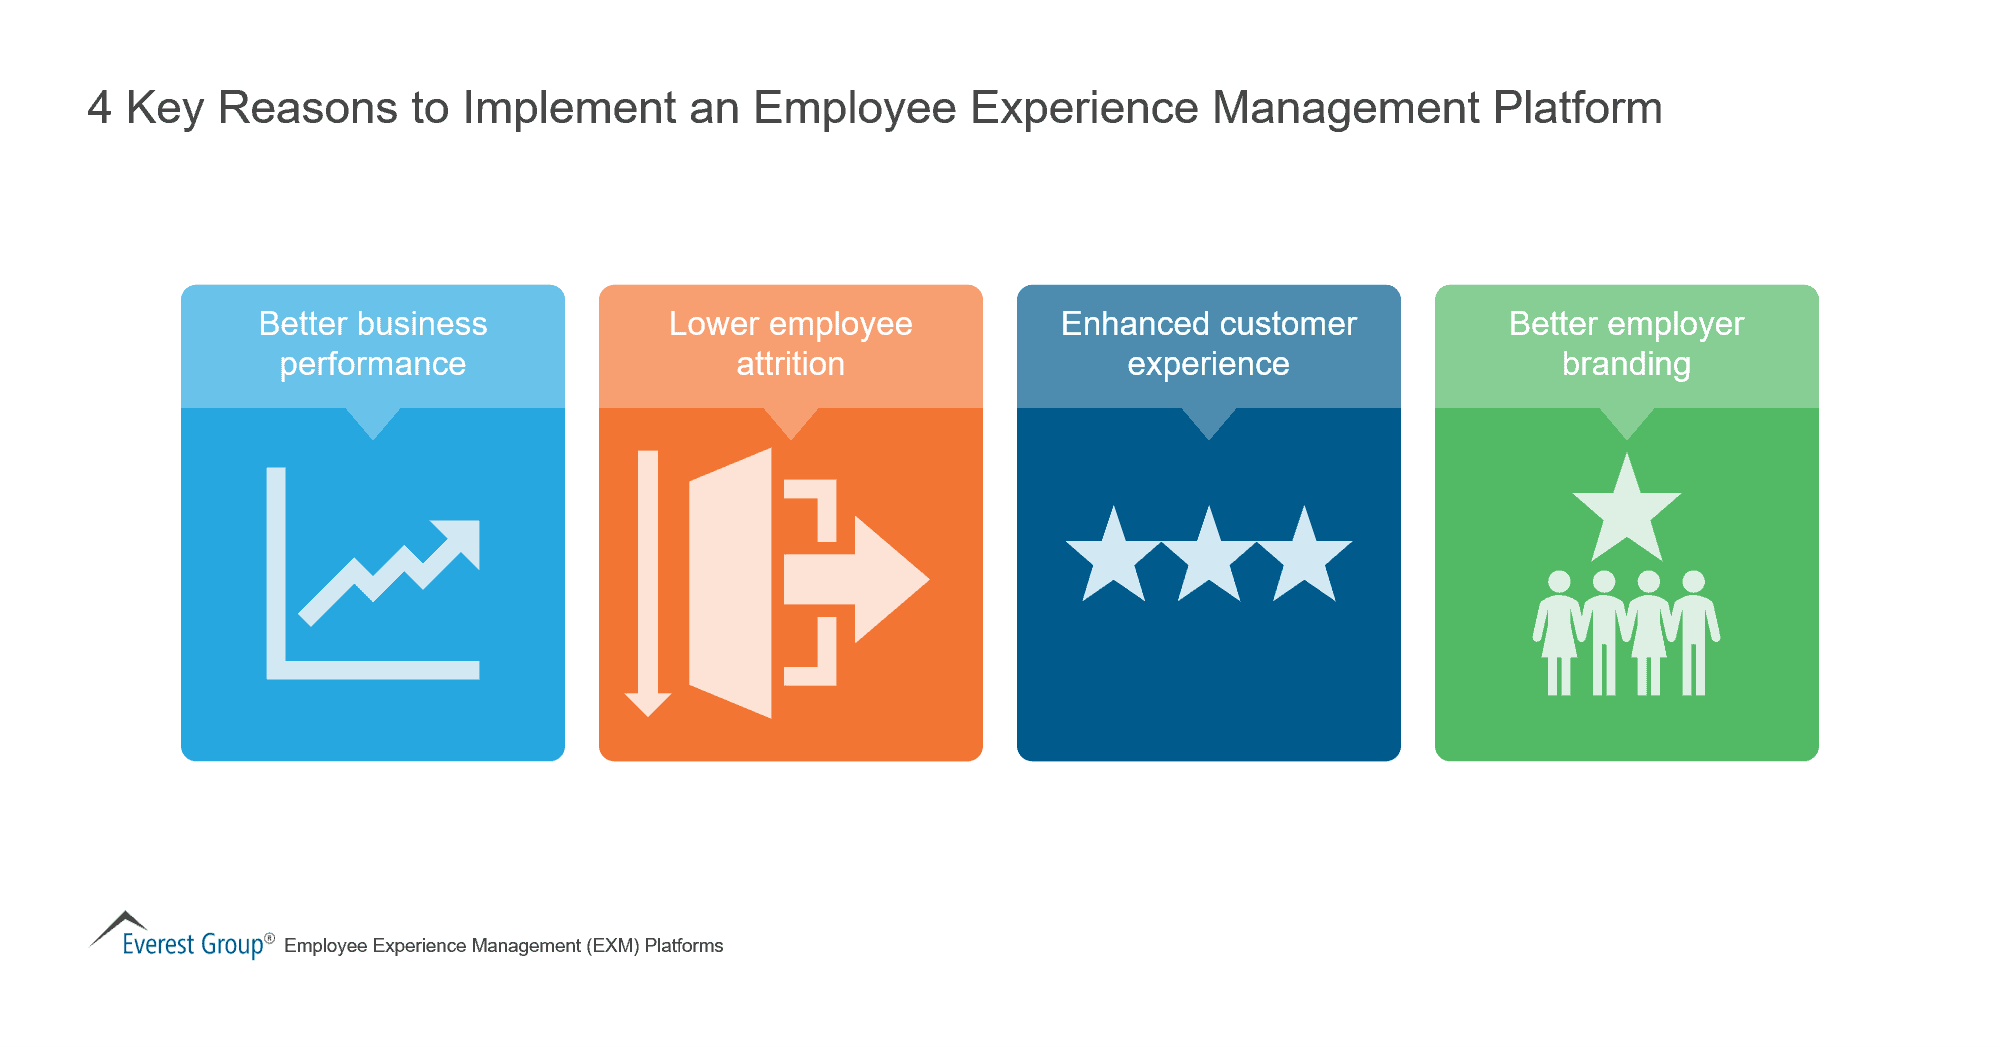 4 Key Reasons to Implement an Employee Experience Management Platform